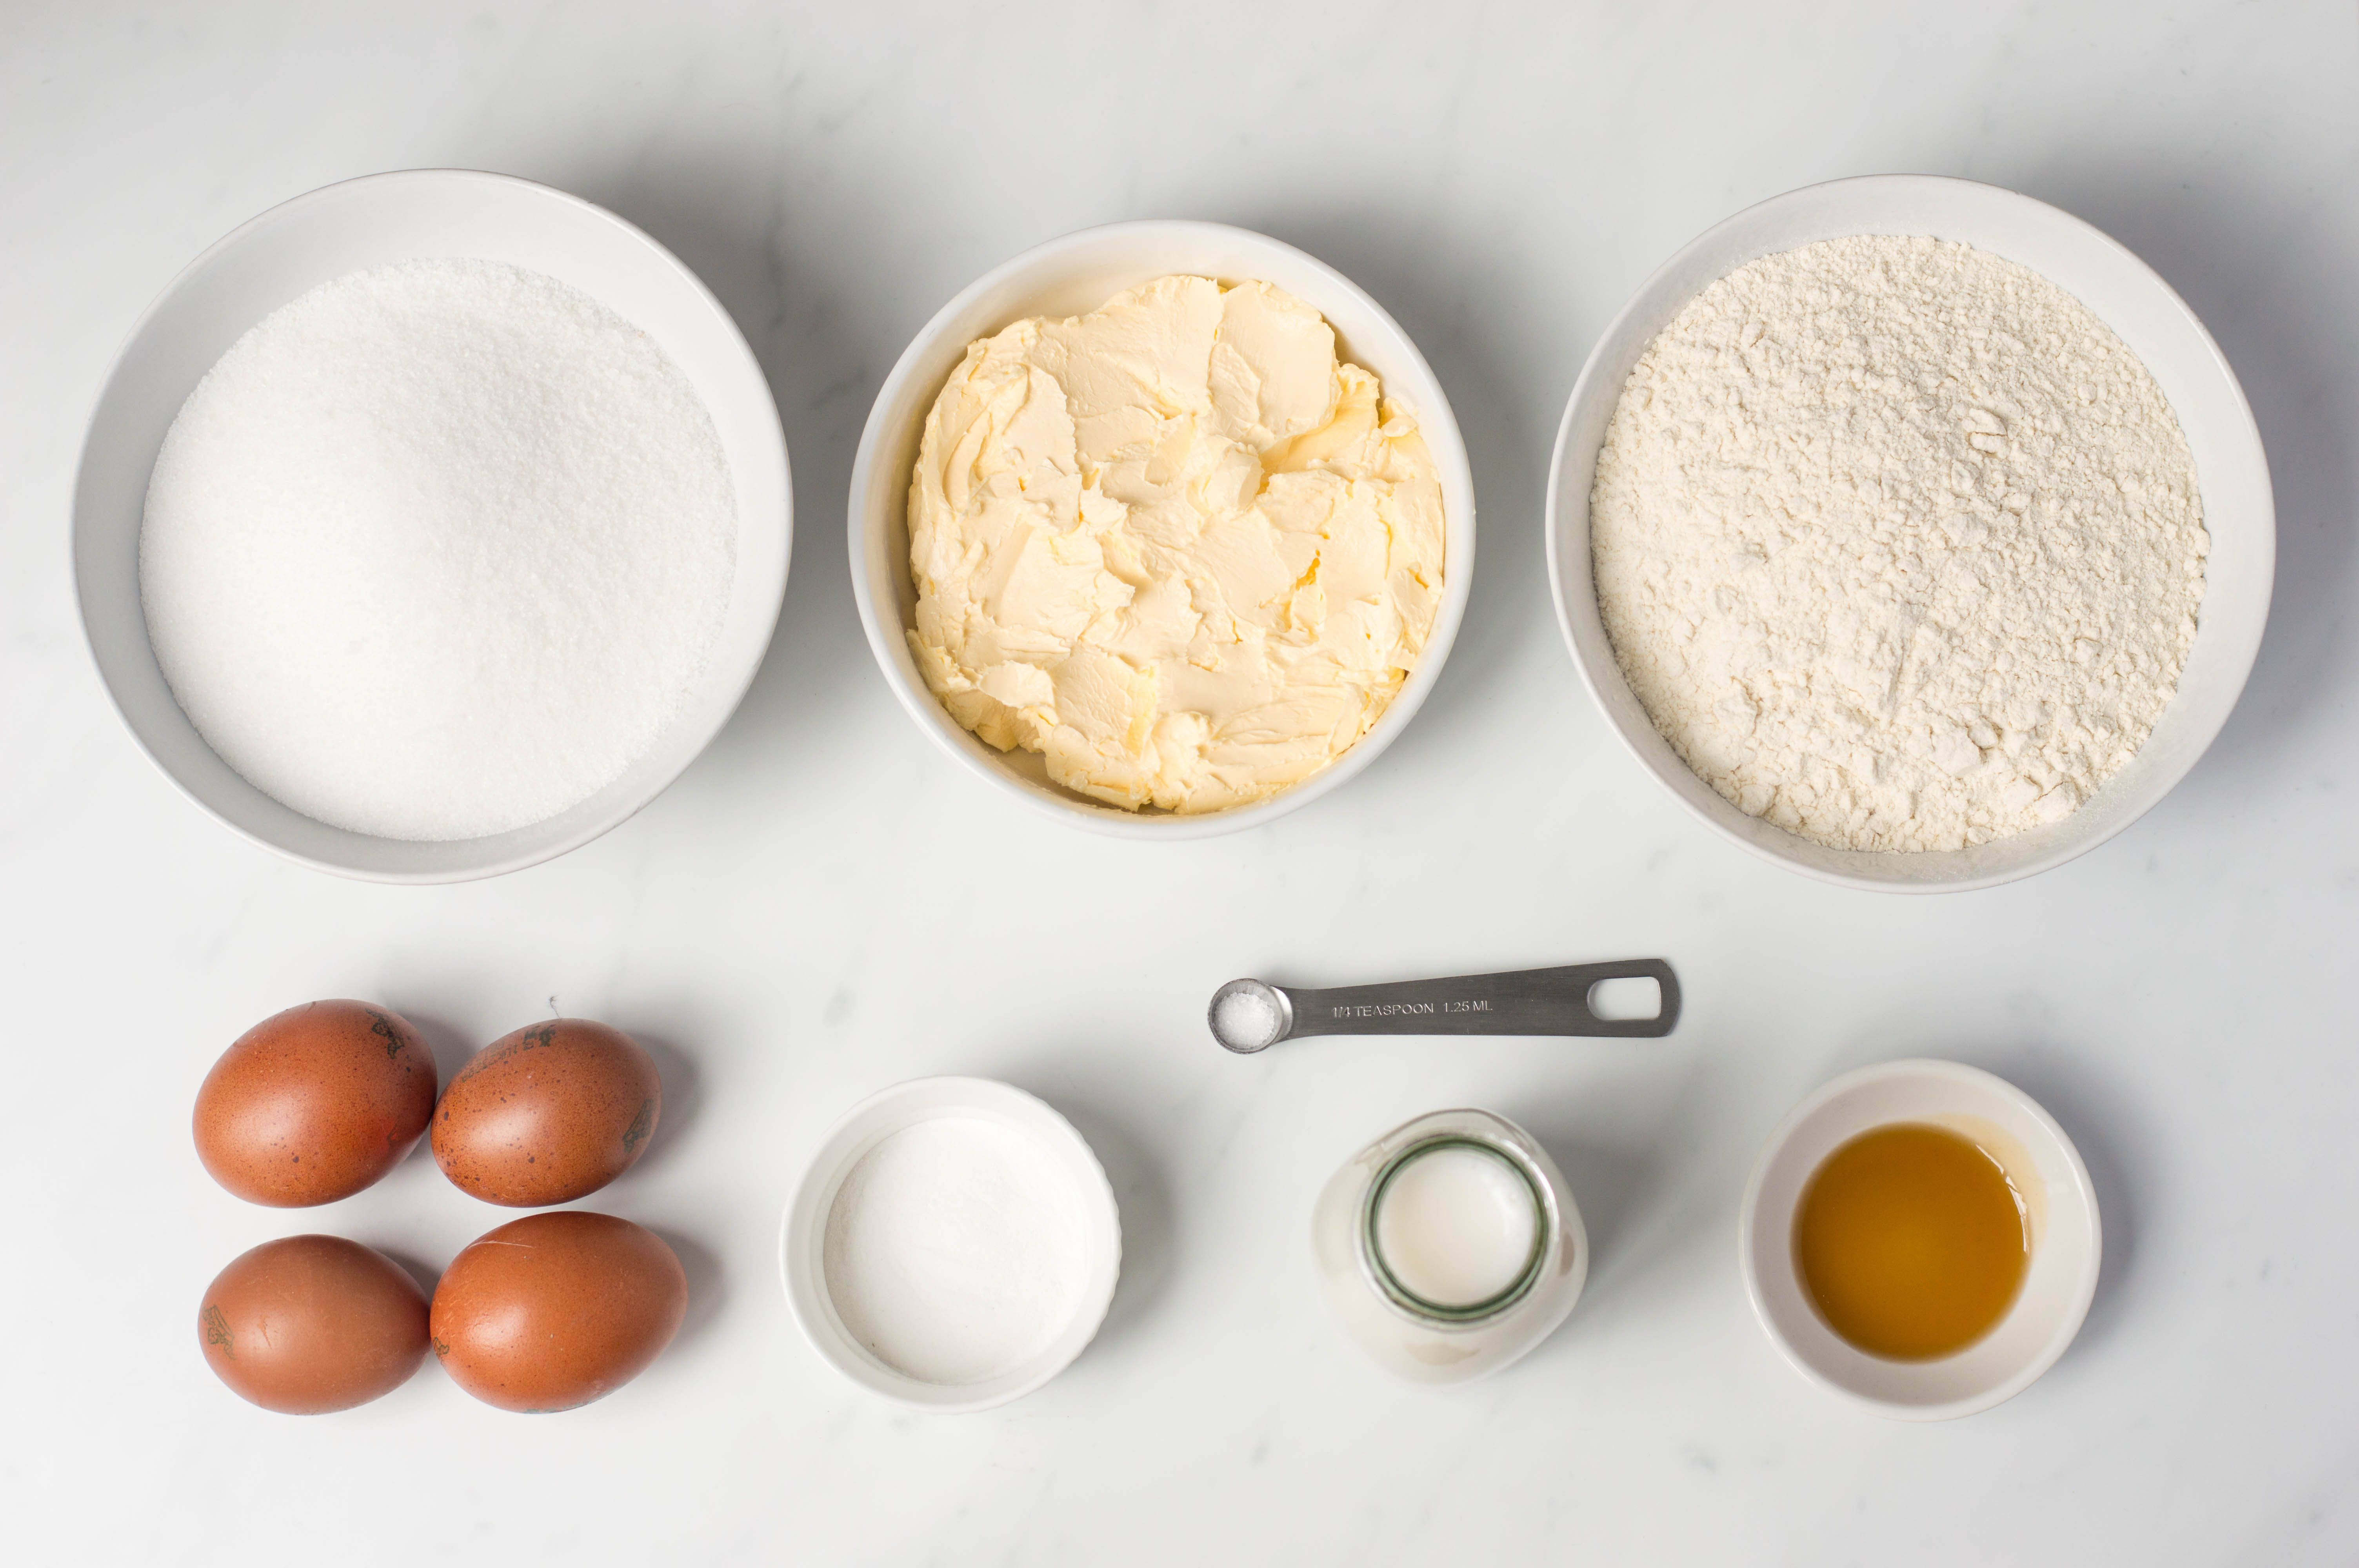 Ingredients for dairy-free yellow cake